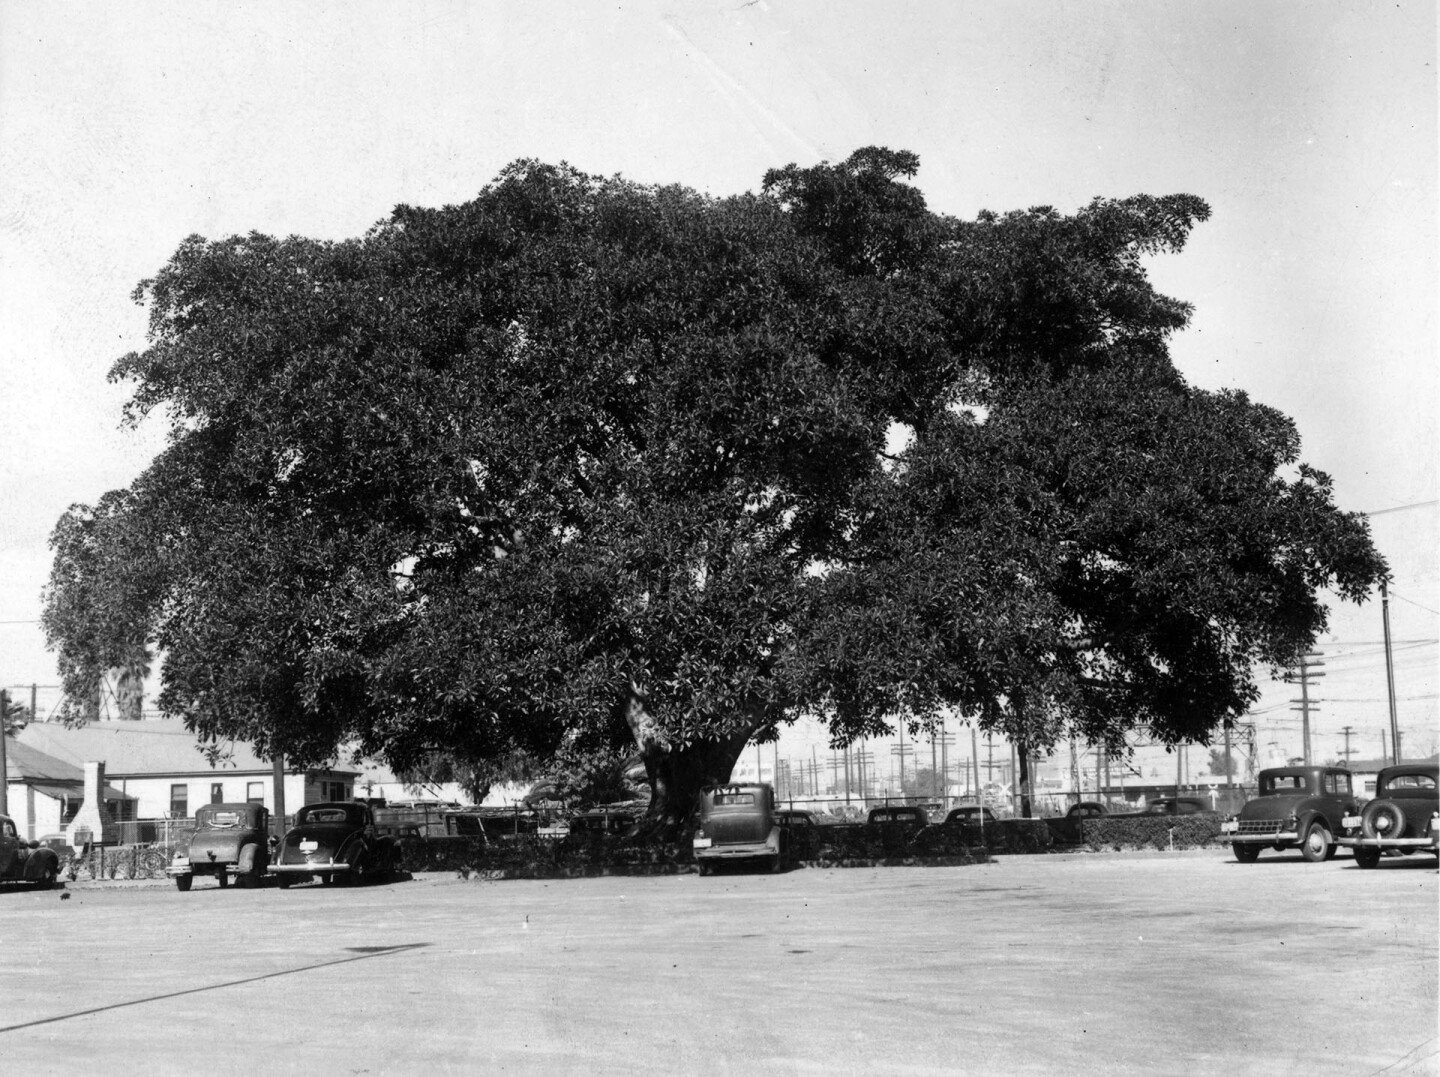 Andrew Cooper planted this Moreton Bay fig tree in Los Angeles in 1876. By the time of this 1946 photo, the spreading giant was surrounded bya parking lot for a Shell Oil facility.